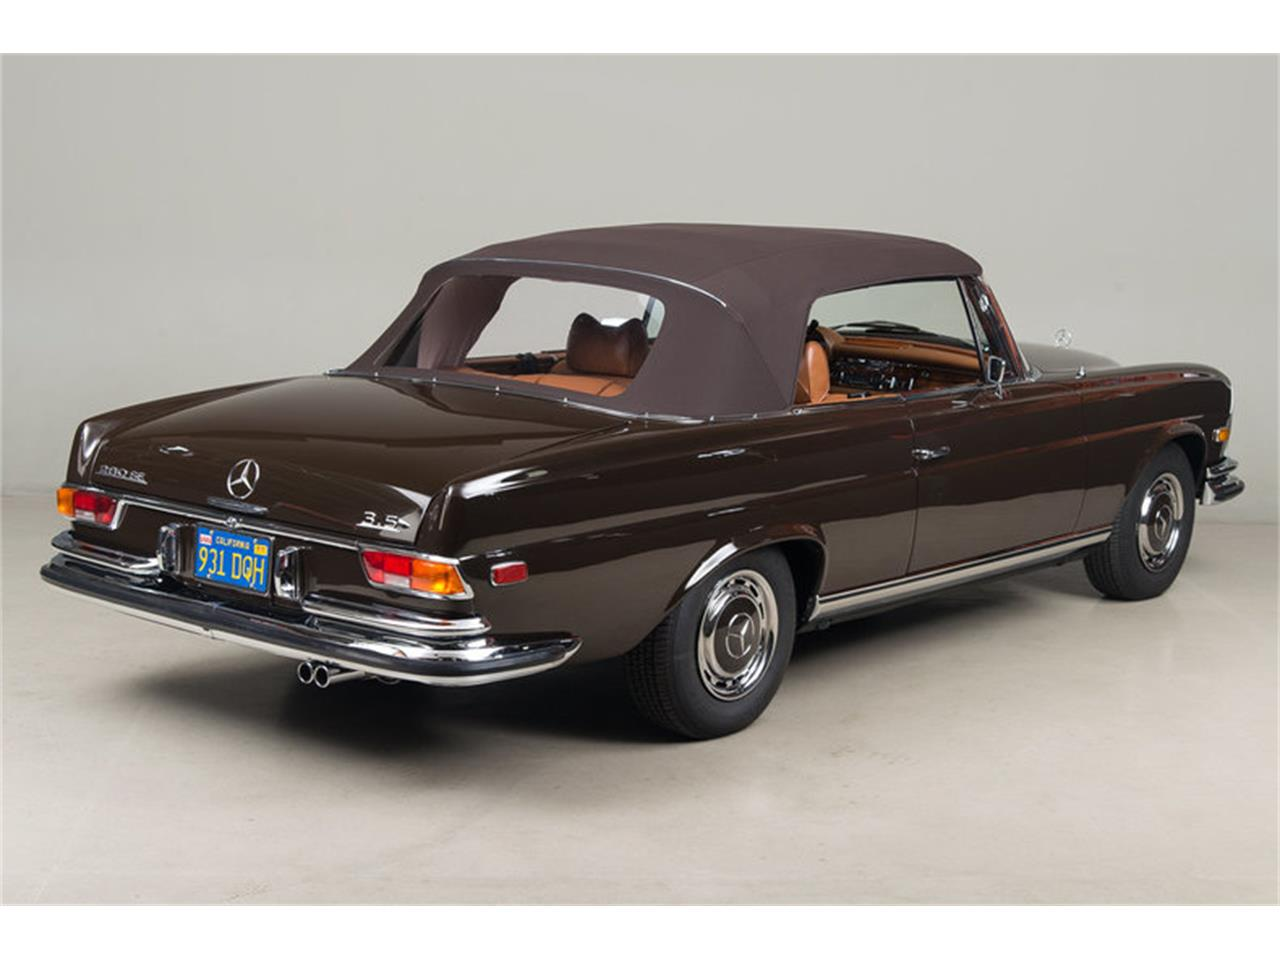 Large Picture of 1971 Mercedes-Benz 280 SE 3.5 Cabriolet Auction Vehicle Offered by Canepa - G0JQ